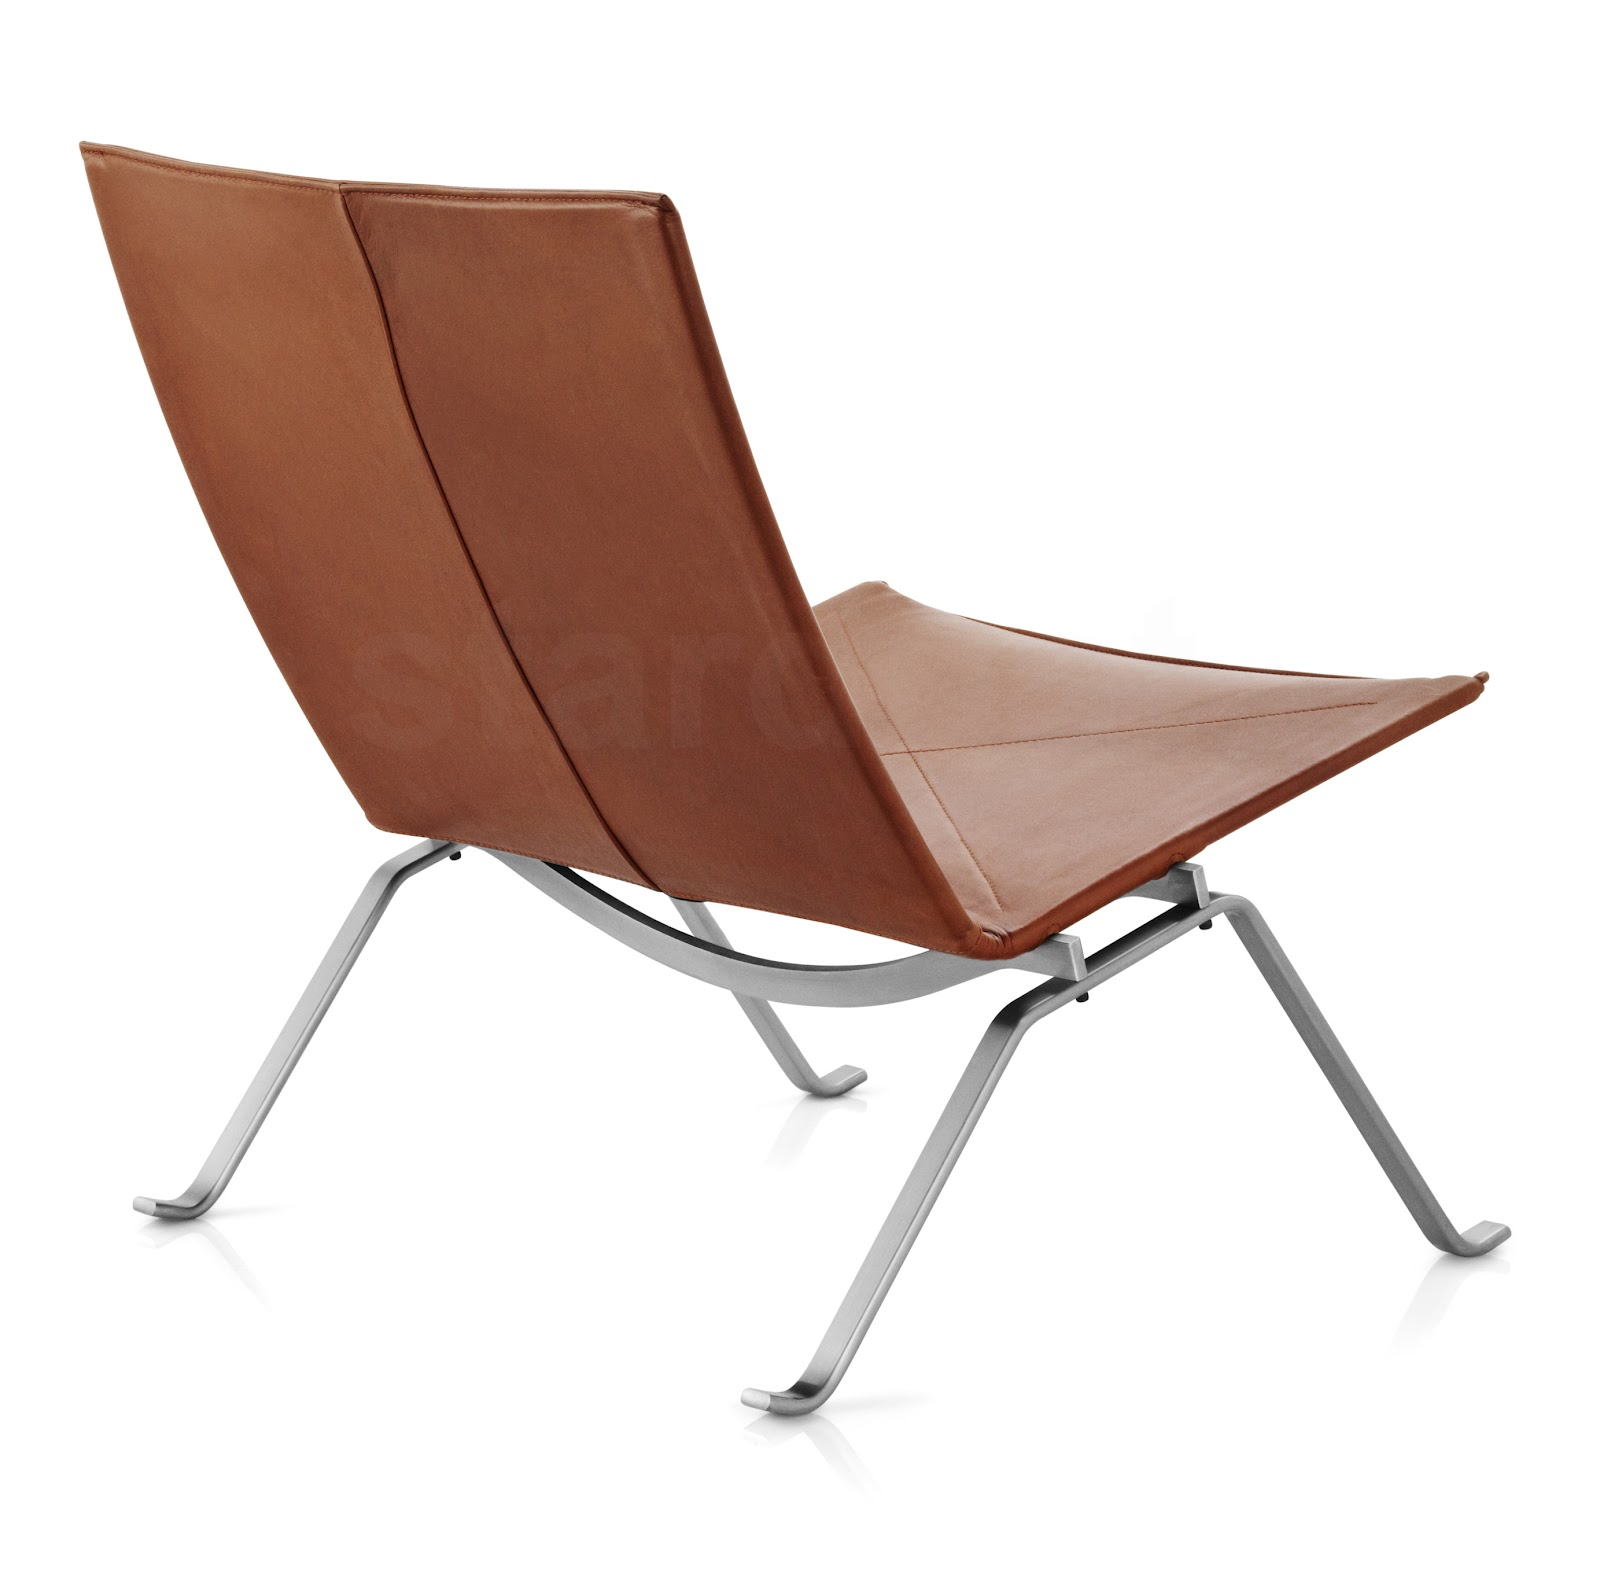 Pk Poul Kjaerholm Leather Pk22 Lounge Chair In Elegance Walnut Leather,  (Color: Brown)